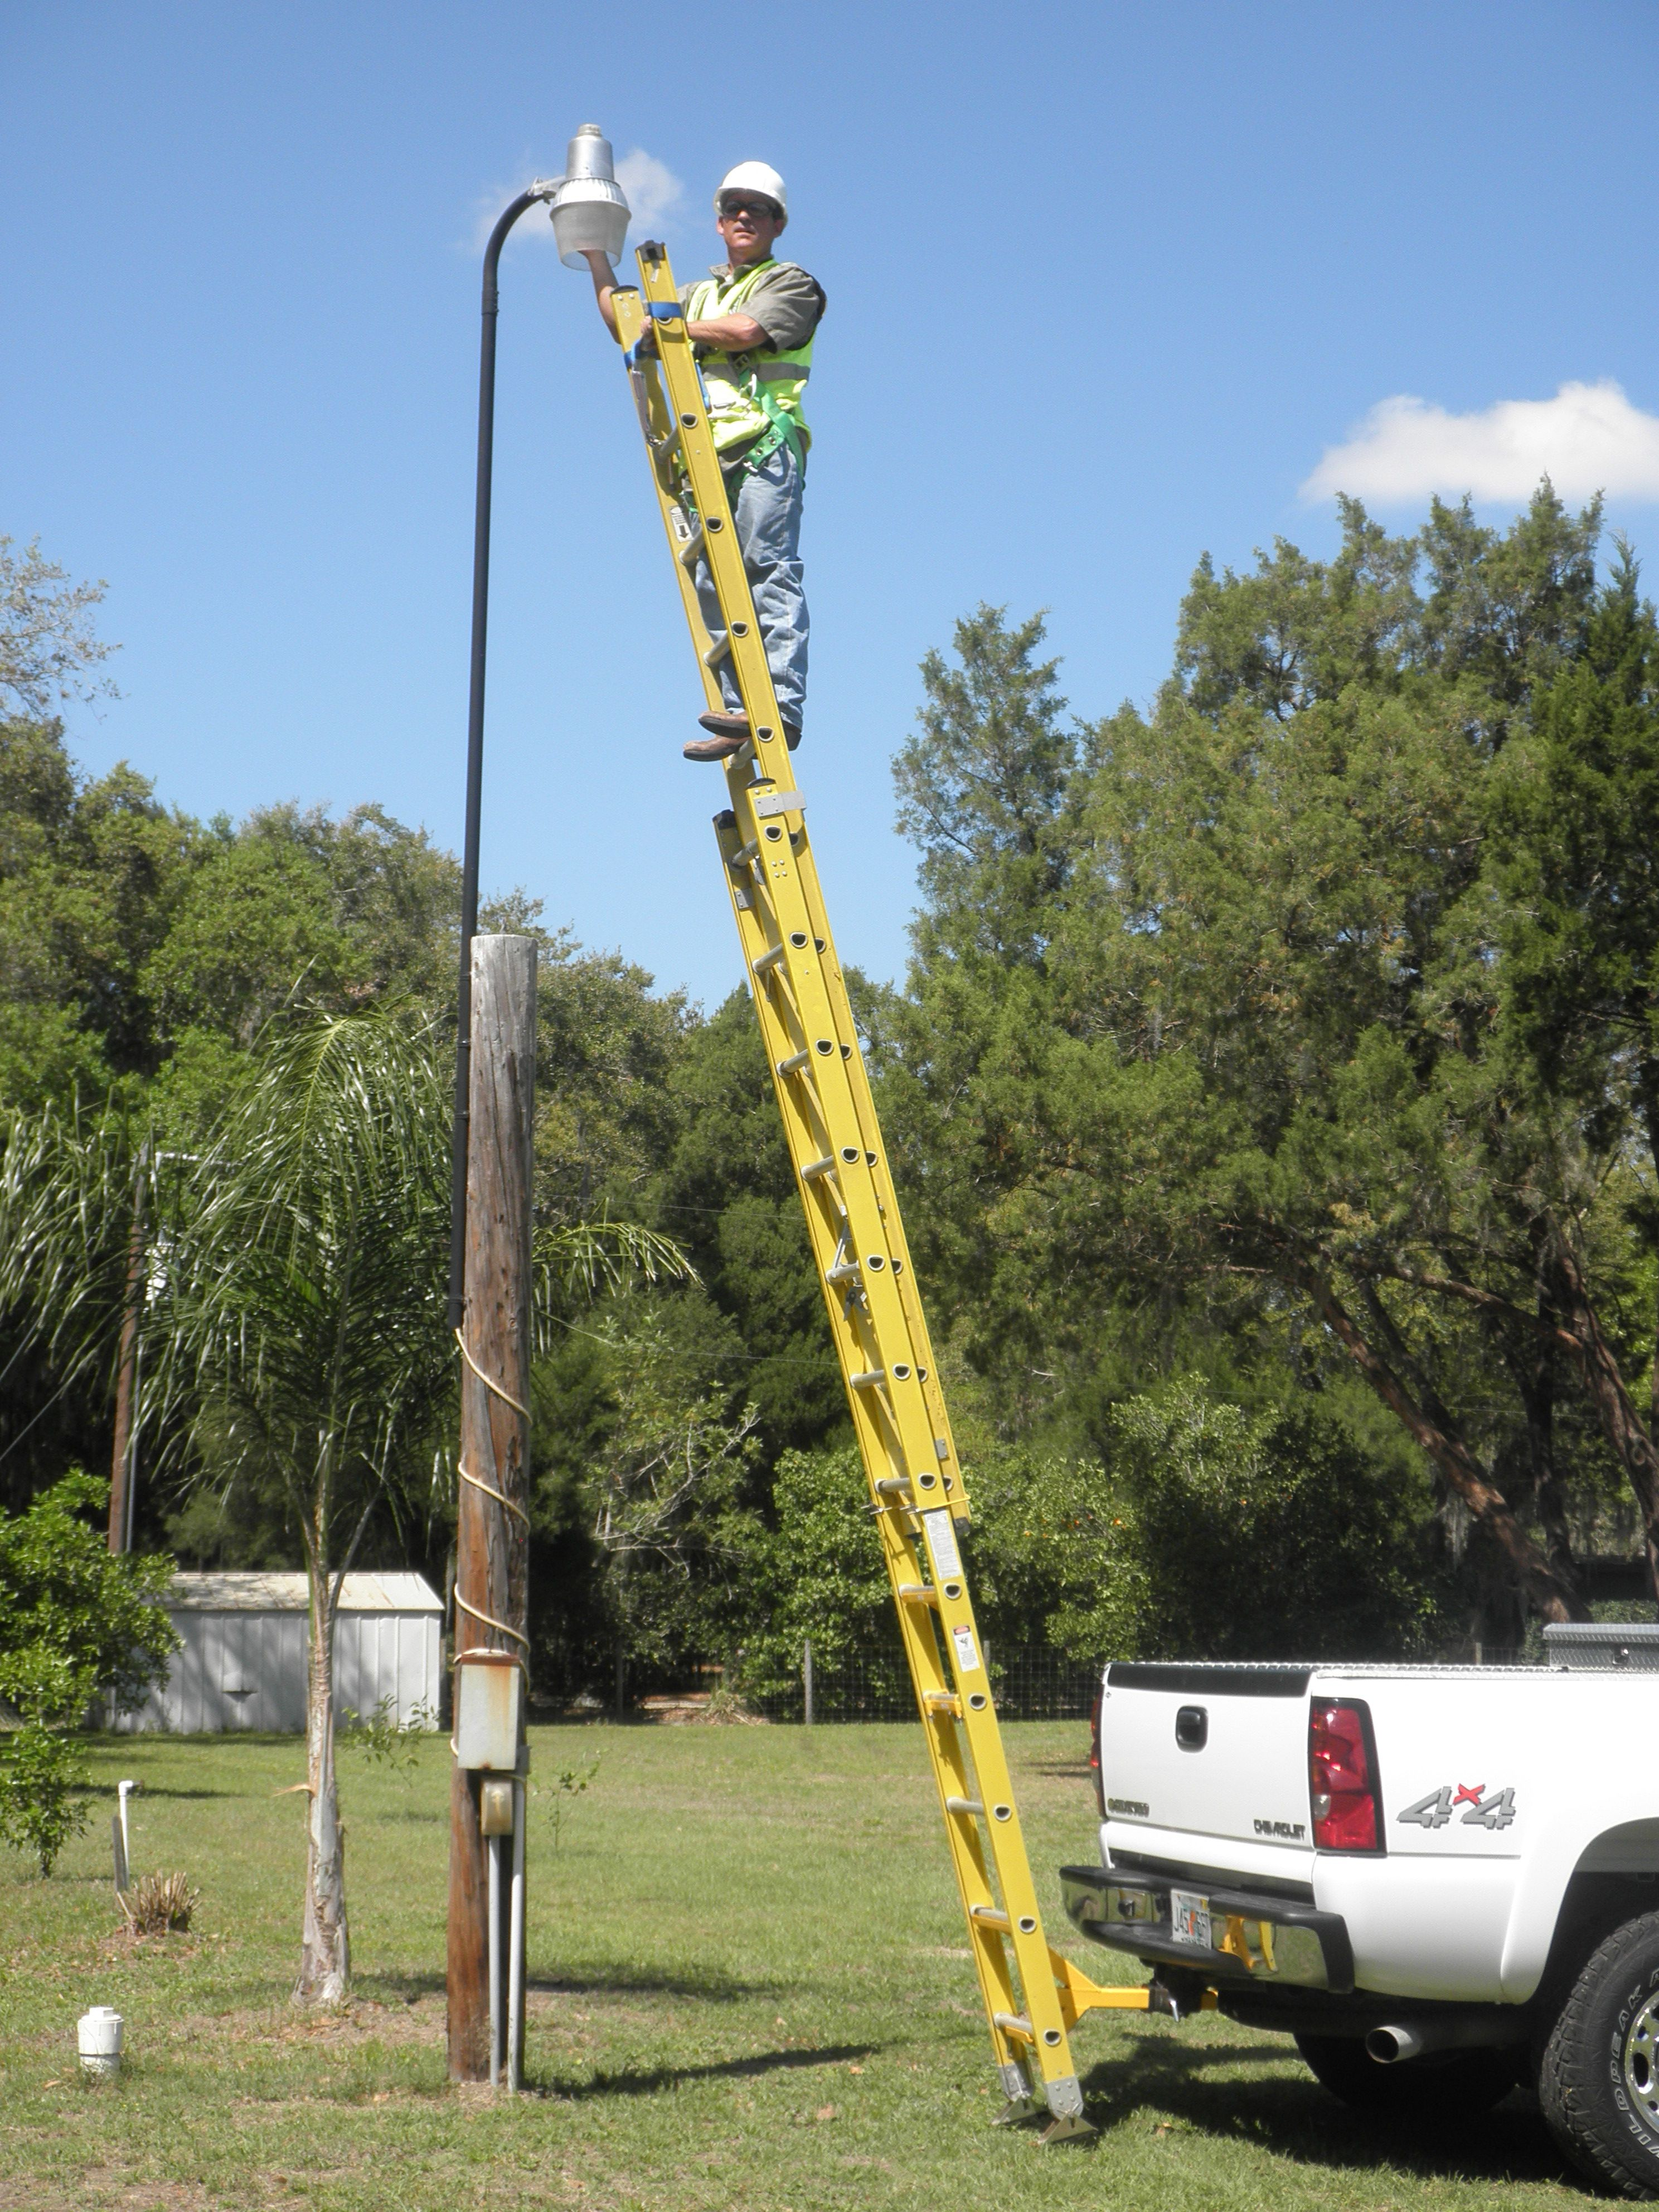 Imagine Not Having To Lean Your Extension Ladder Against A Pole When Changing The Lamp The Monkeyrack Construction Tools Homemade Tools Tools And Equipment